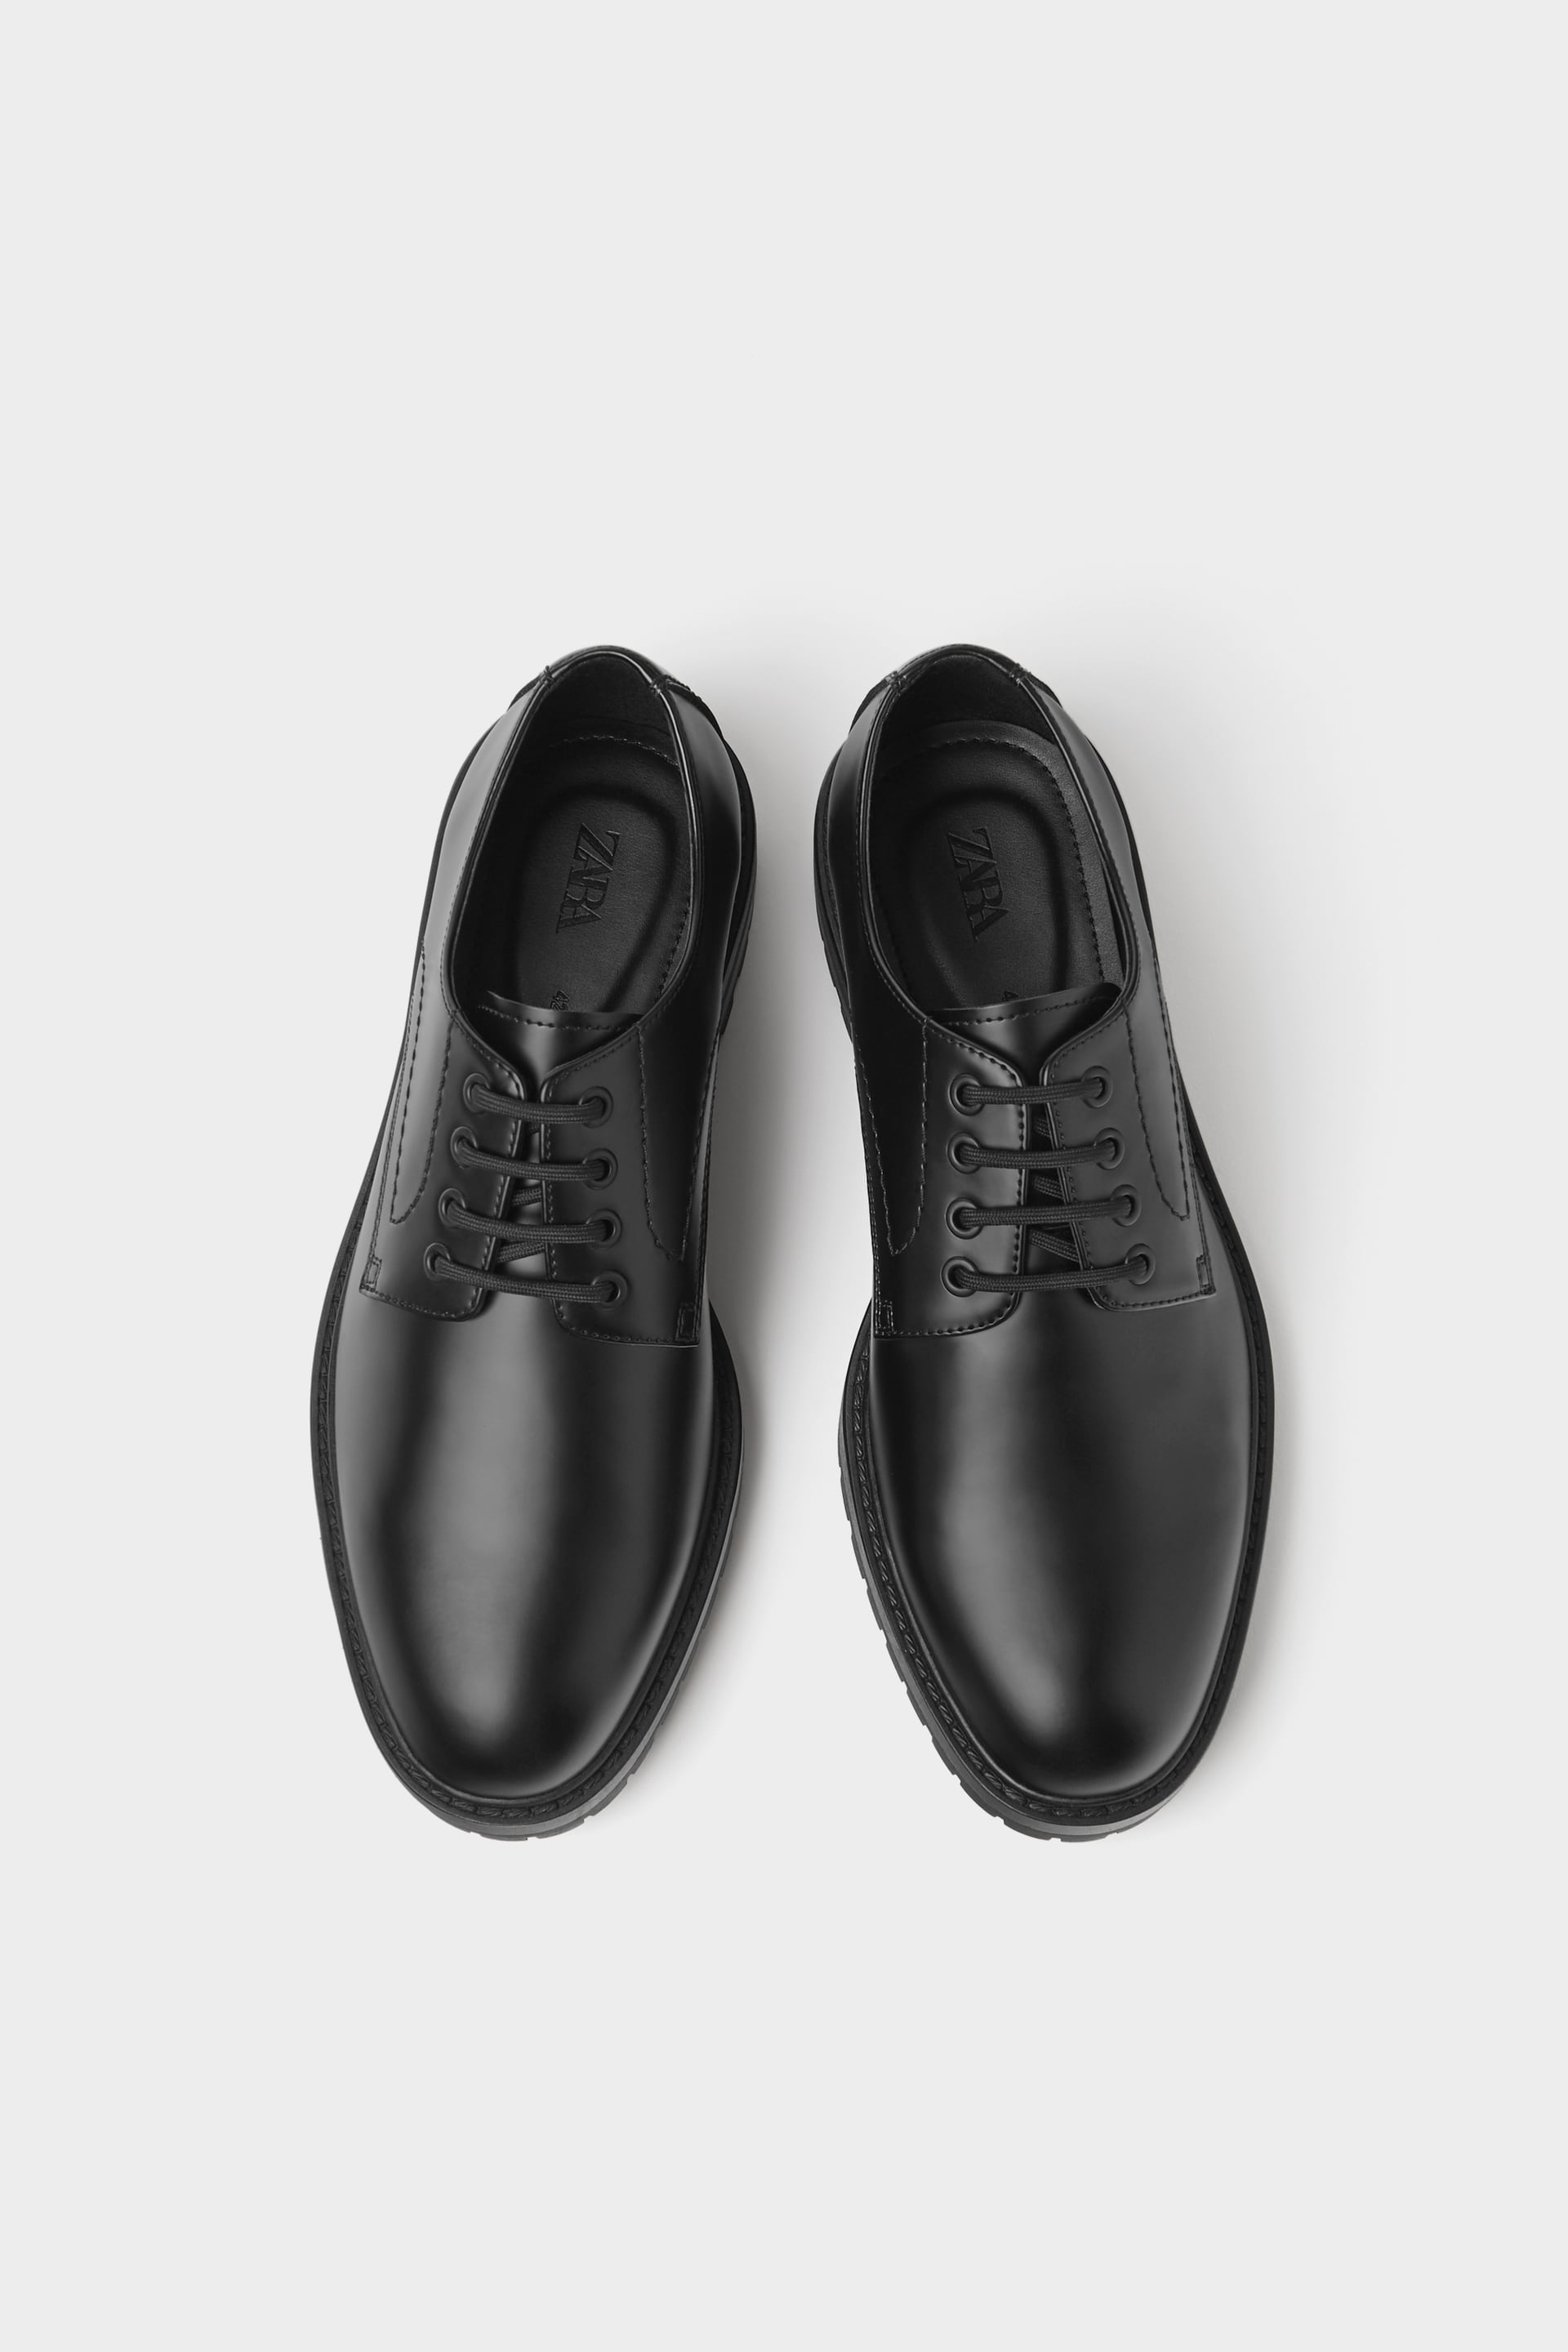 BLACK SHOES WITH TRACK SOLES